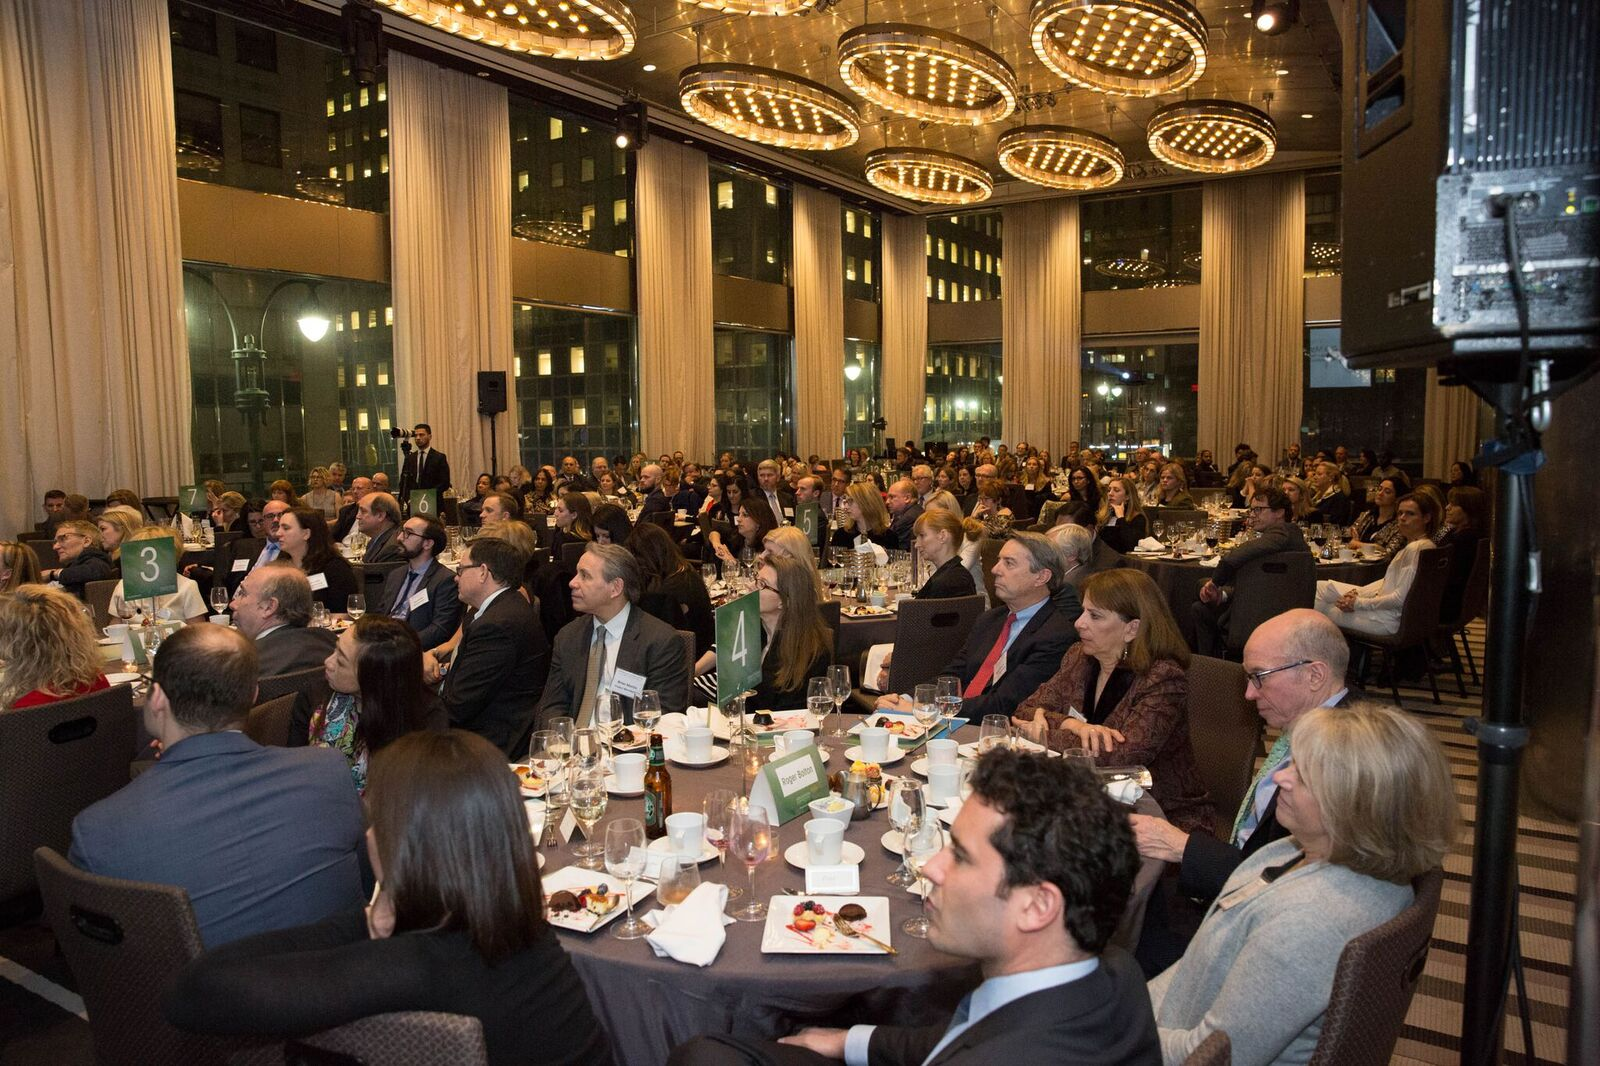 Nearly 230 people attended the inaugural Page Center Awards dinner.